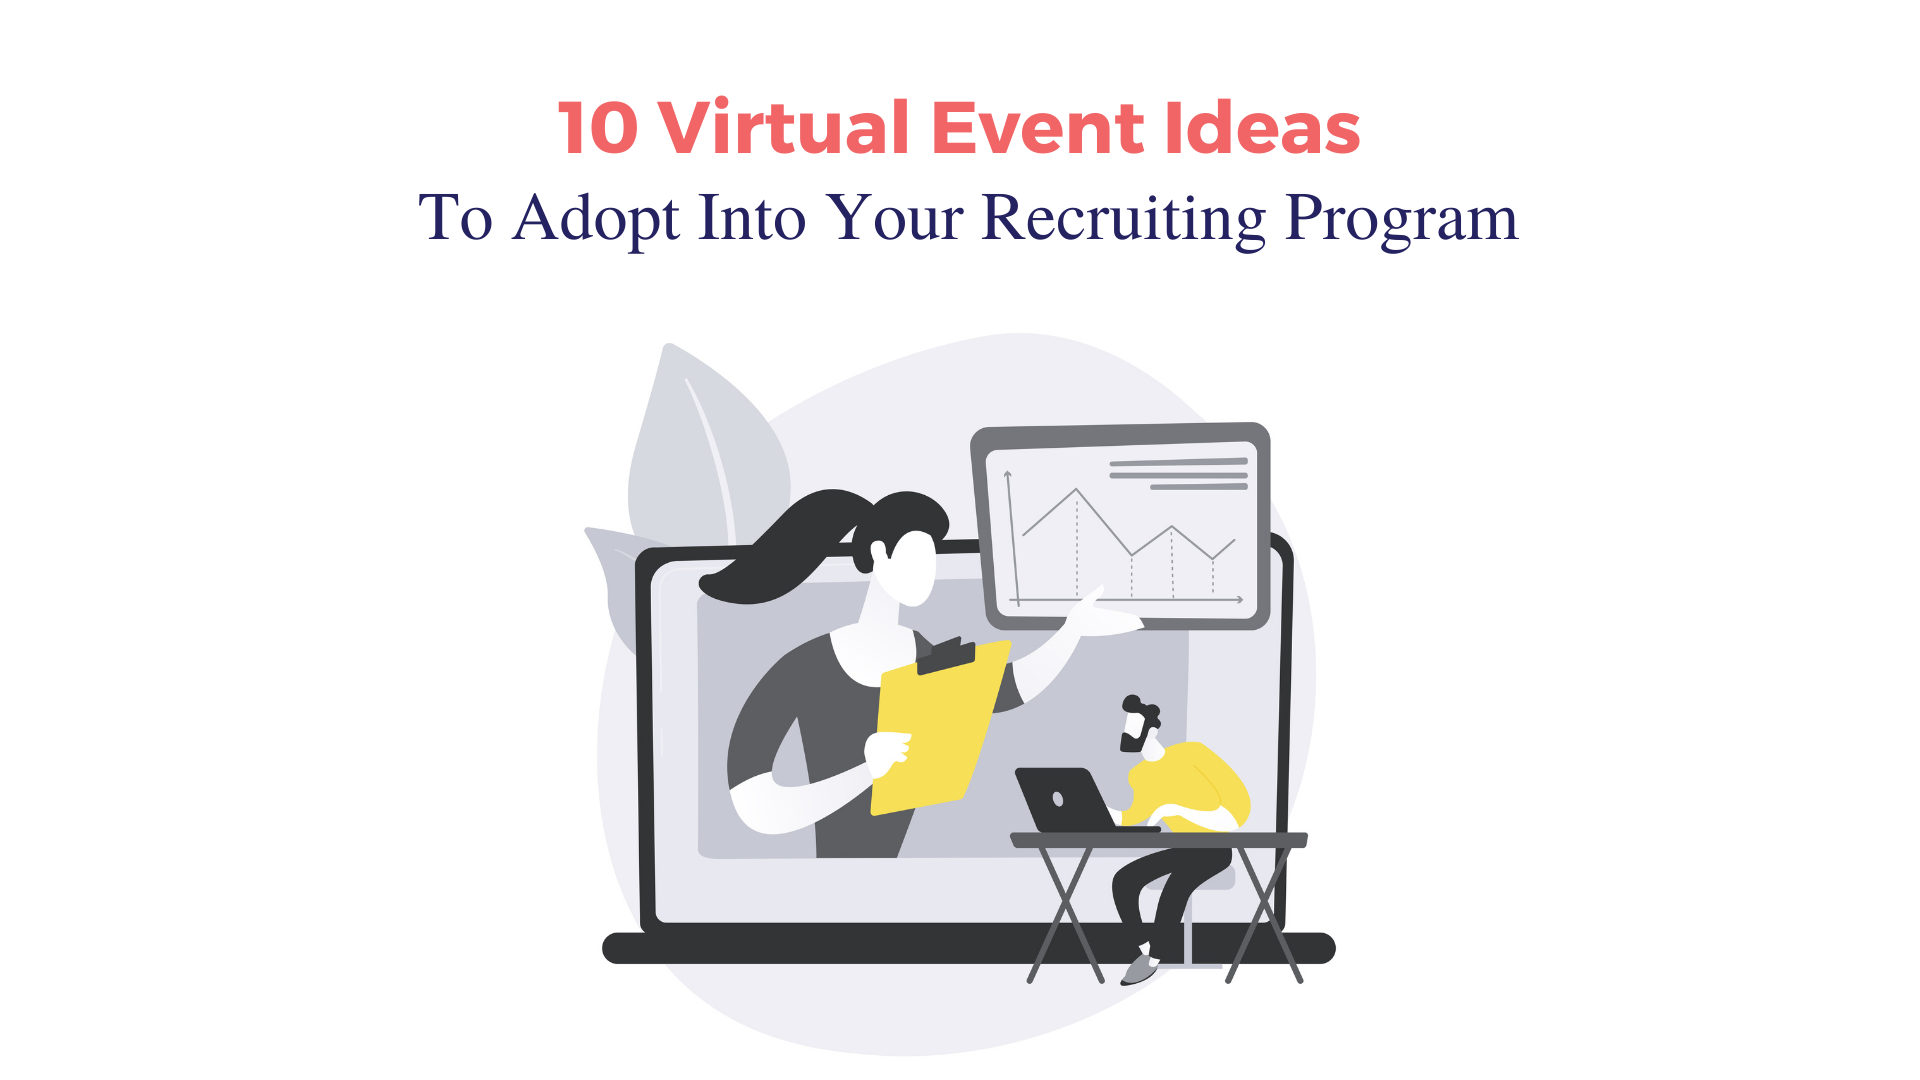 10 Virtual Event Ideas To Adopt Into Your Recruiting Program